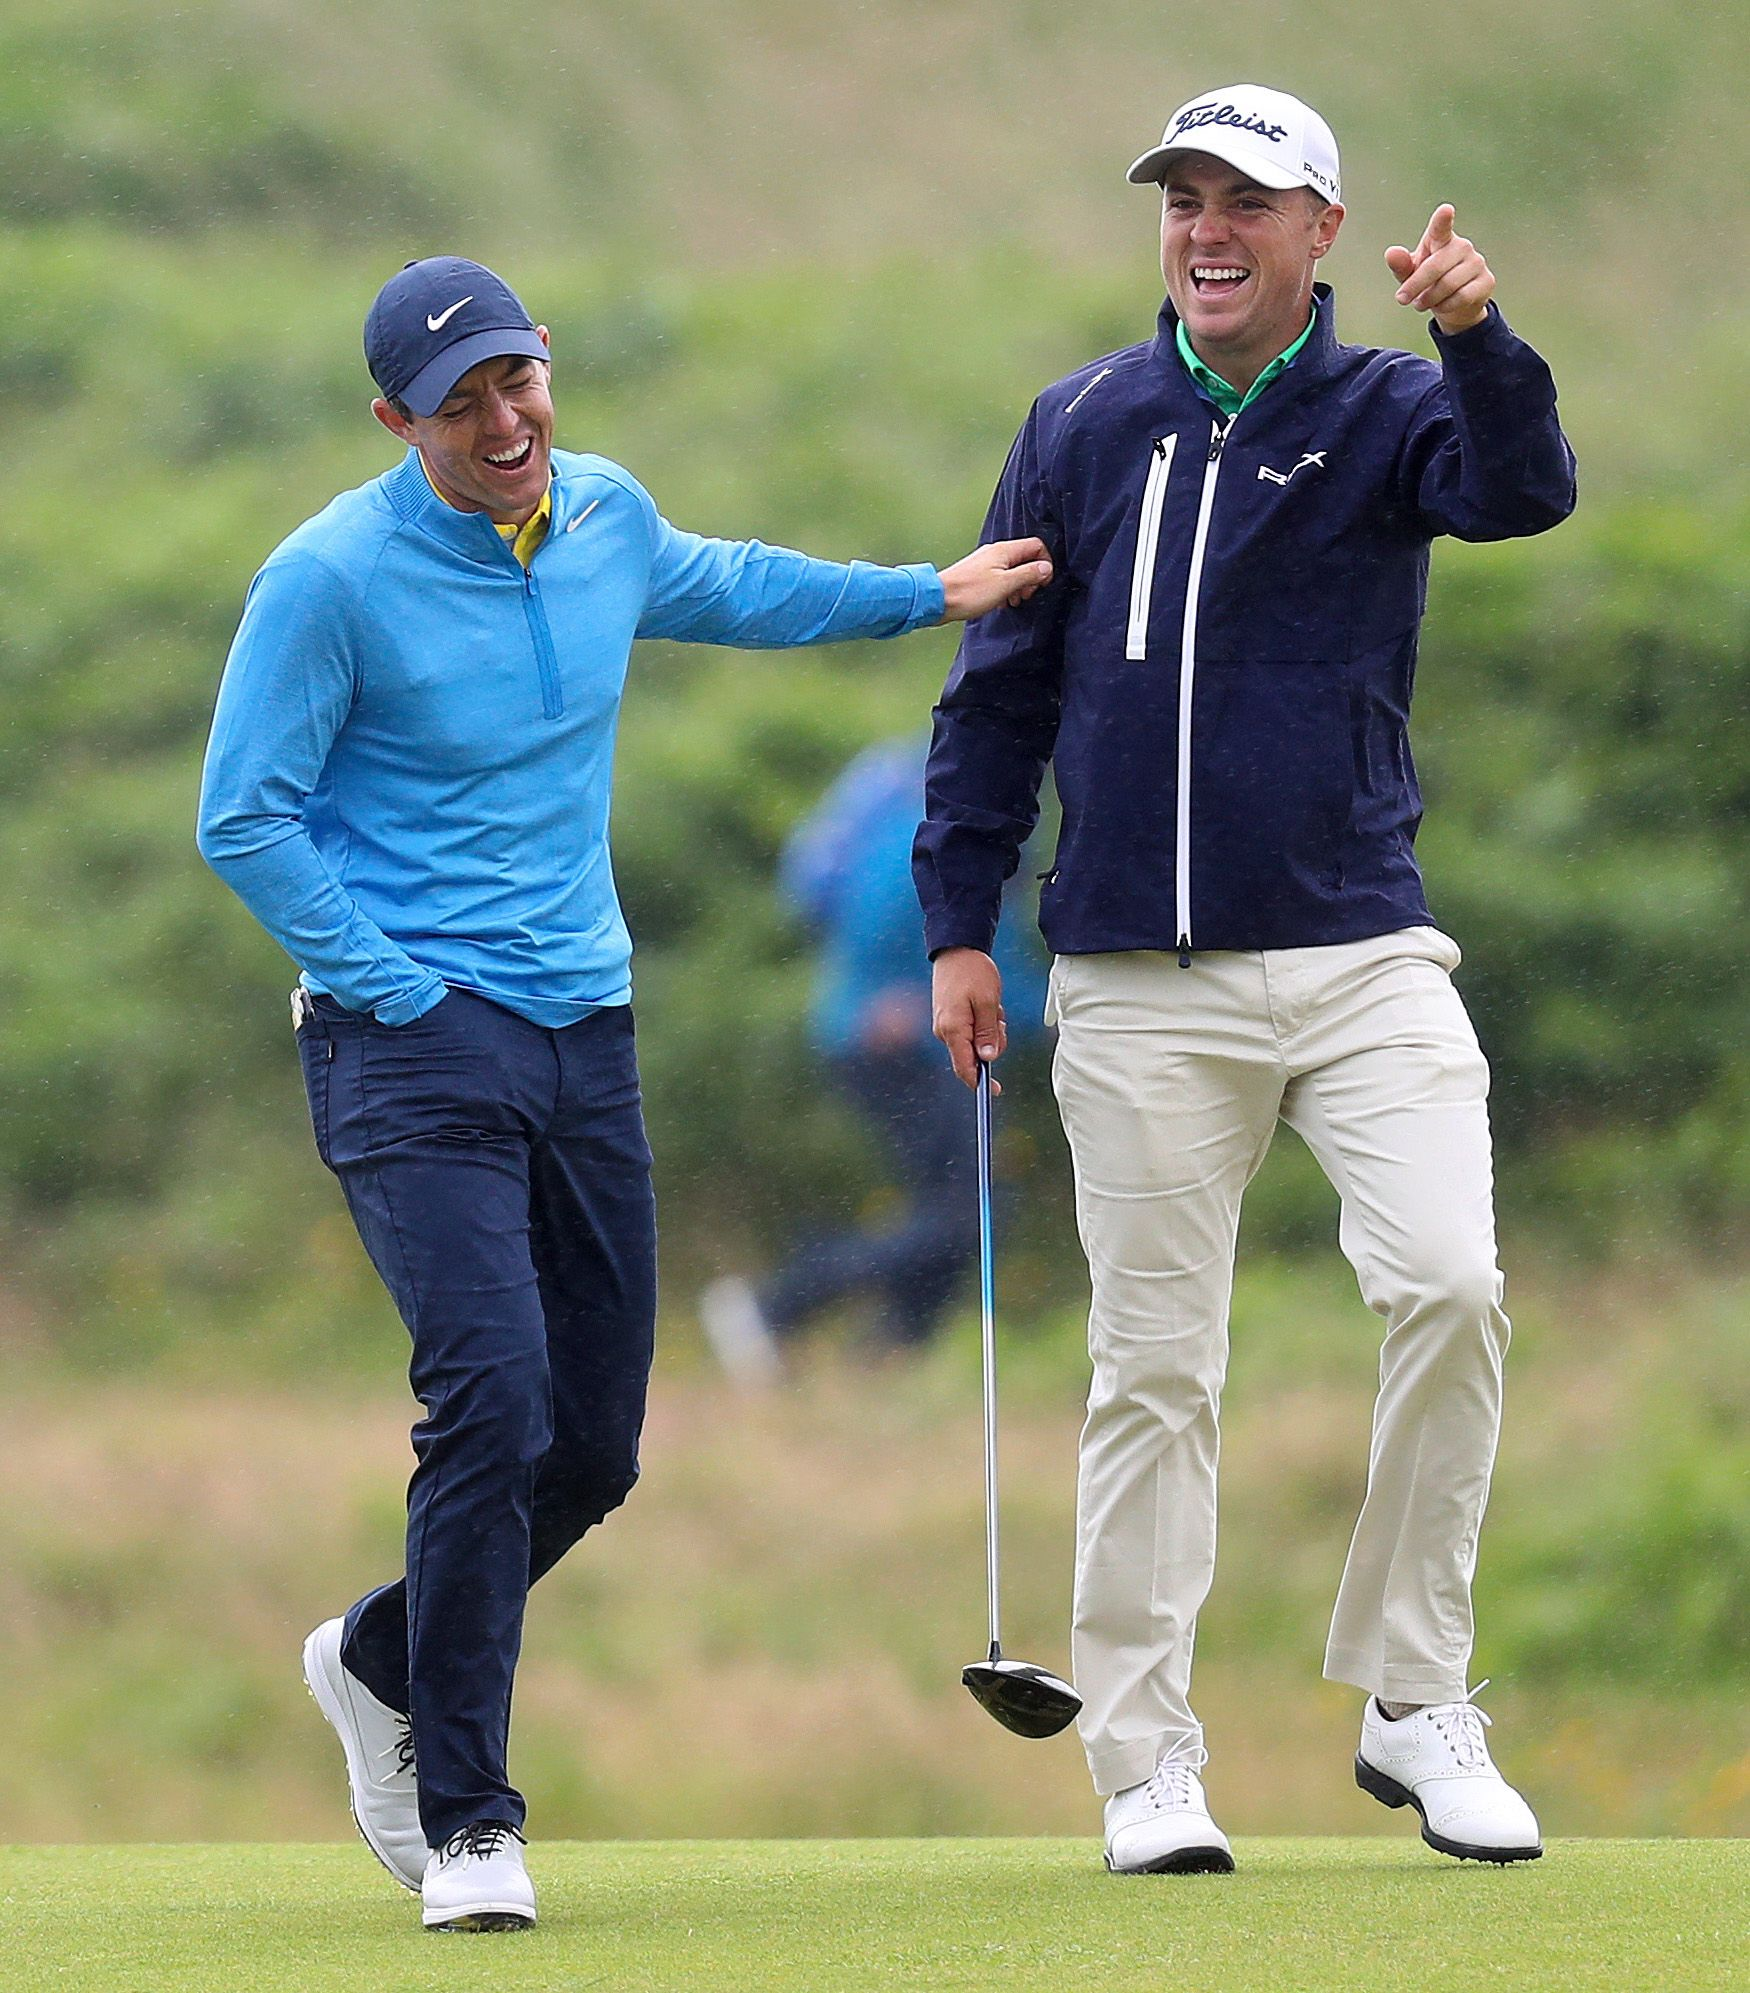 Justin Thomas (12/1) can claim in his second major title at the US Masters at Augusta National this week while Rory McIlroy looks a good each-way punt to sneak into the places at 16/1